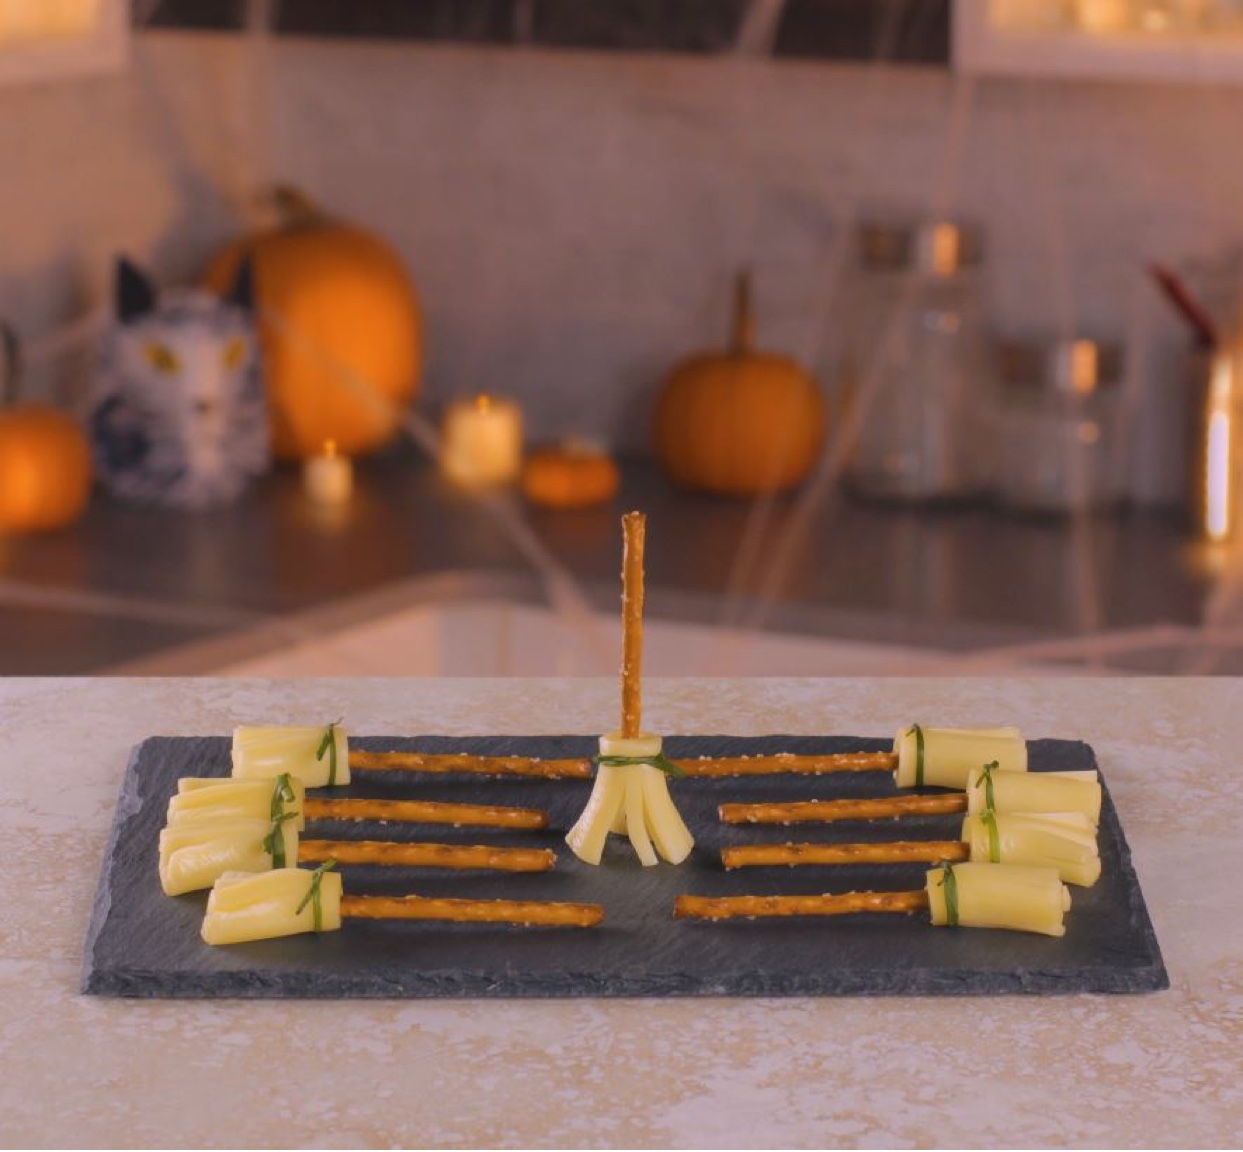 Nine fully assembled string cheese pretzel broomsticks displayed on a slate tray with fall decorations in the background.